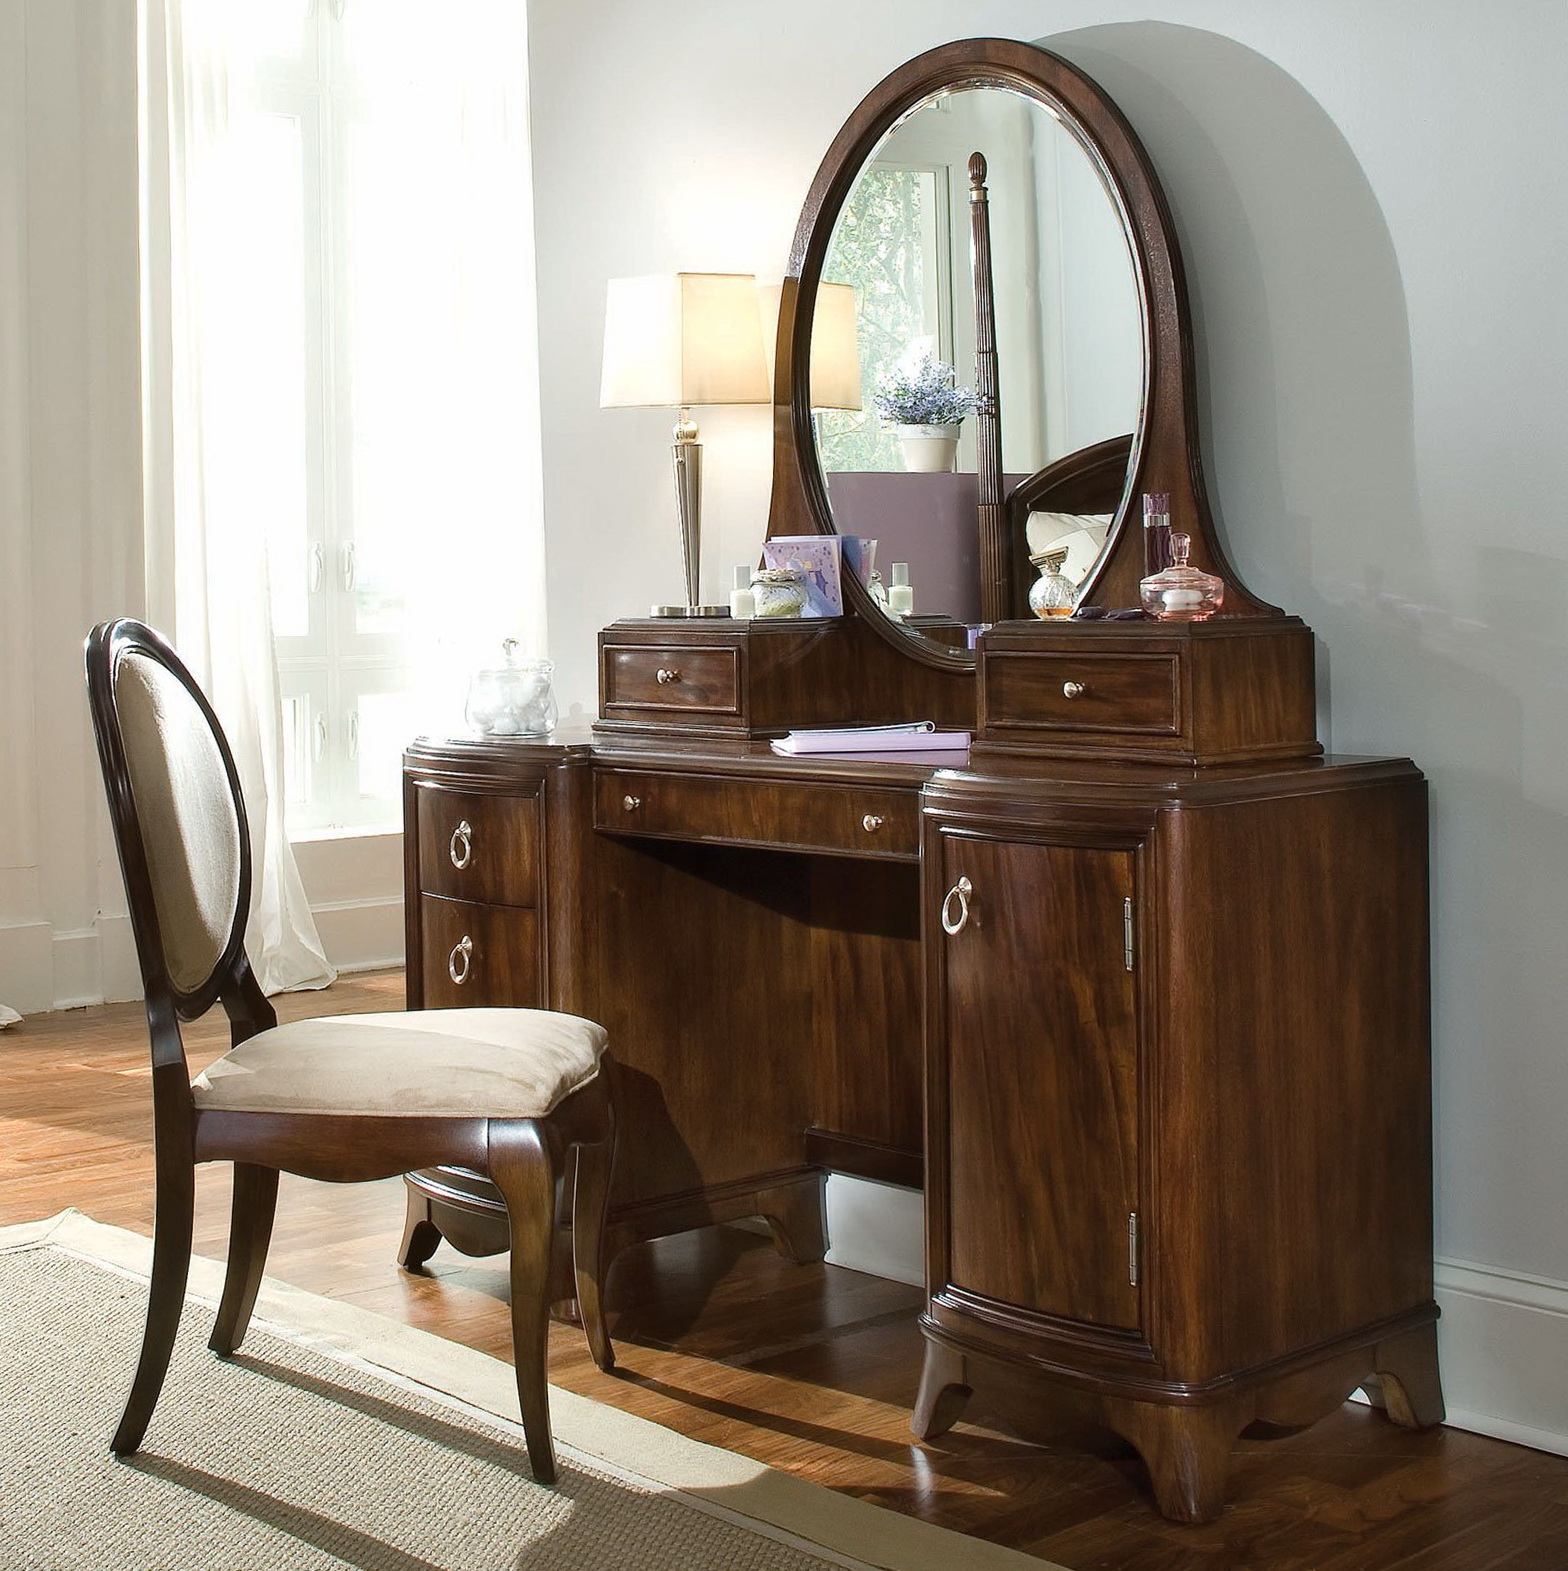 Antique Vanity With Round Mirror